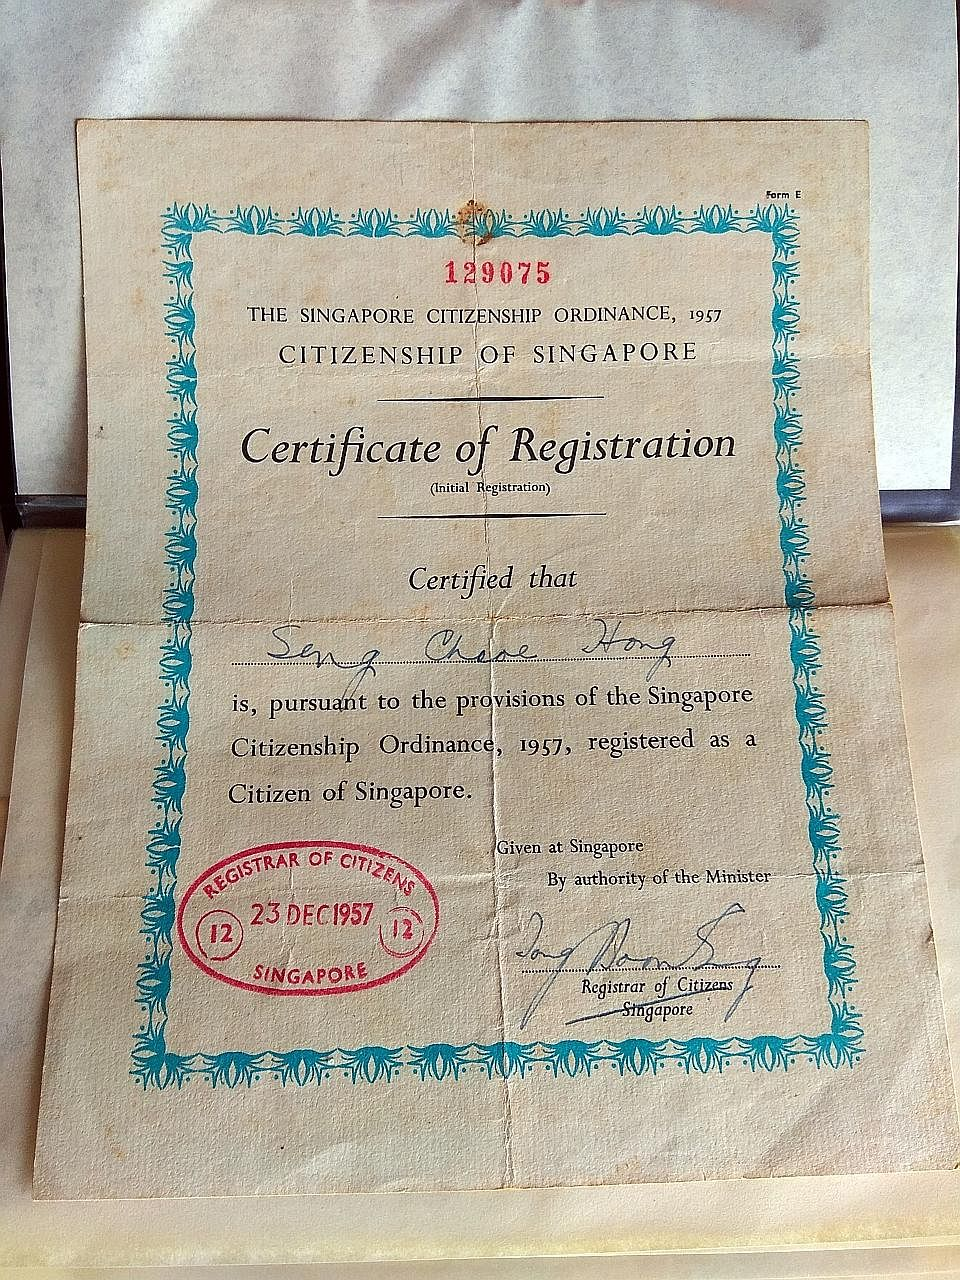 Mr Seng Chek Hong (above) registered as a Singapore citizen in 1957 (left), renouncing his Chinese citizenship. He did so at a time when others from China hesitated, said his grandson.